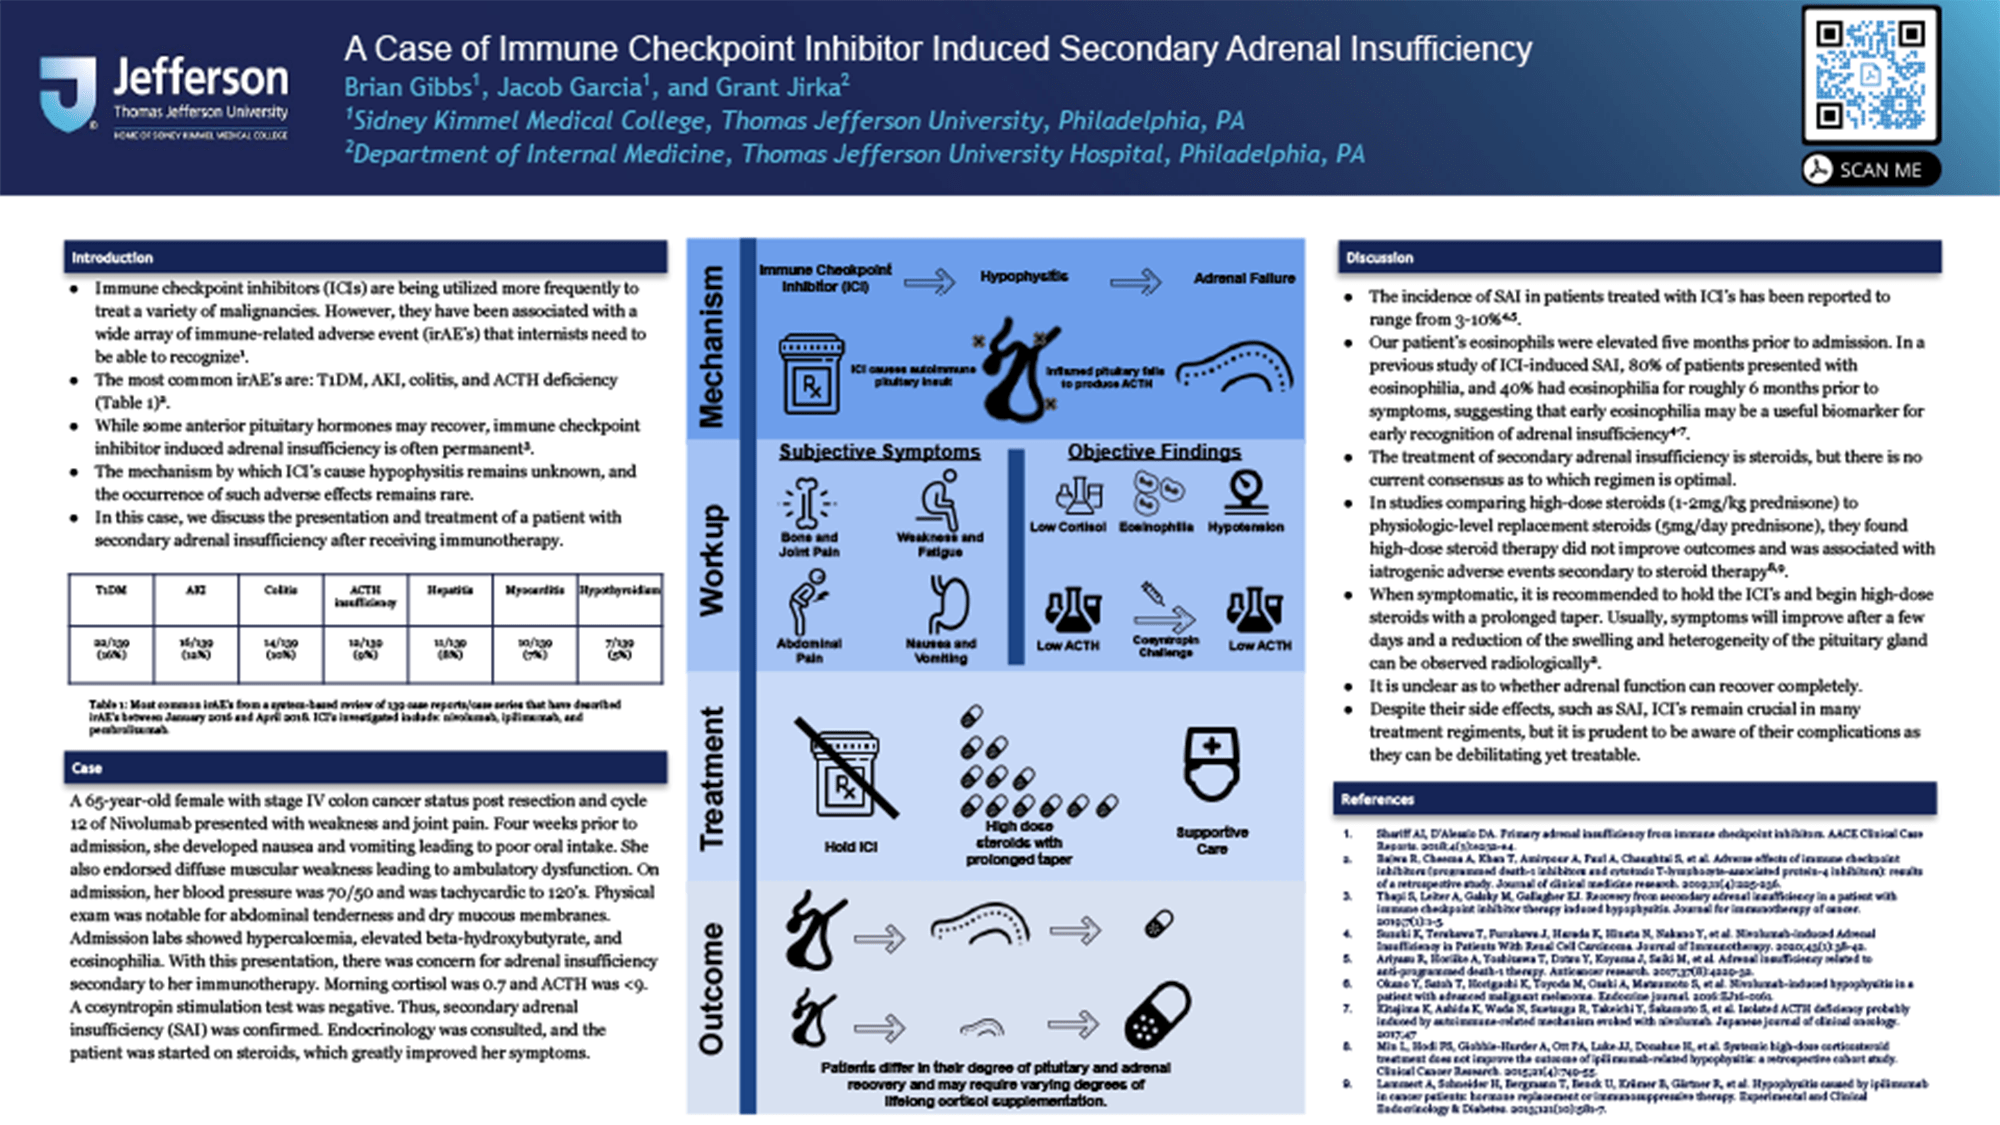 PAS-96 - Brian Gibbs - PAS-A-Case-Of-Immune_Checkpoint-Inhibitor-Induced-Secondary-Adrenal-Insufficiency